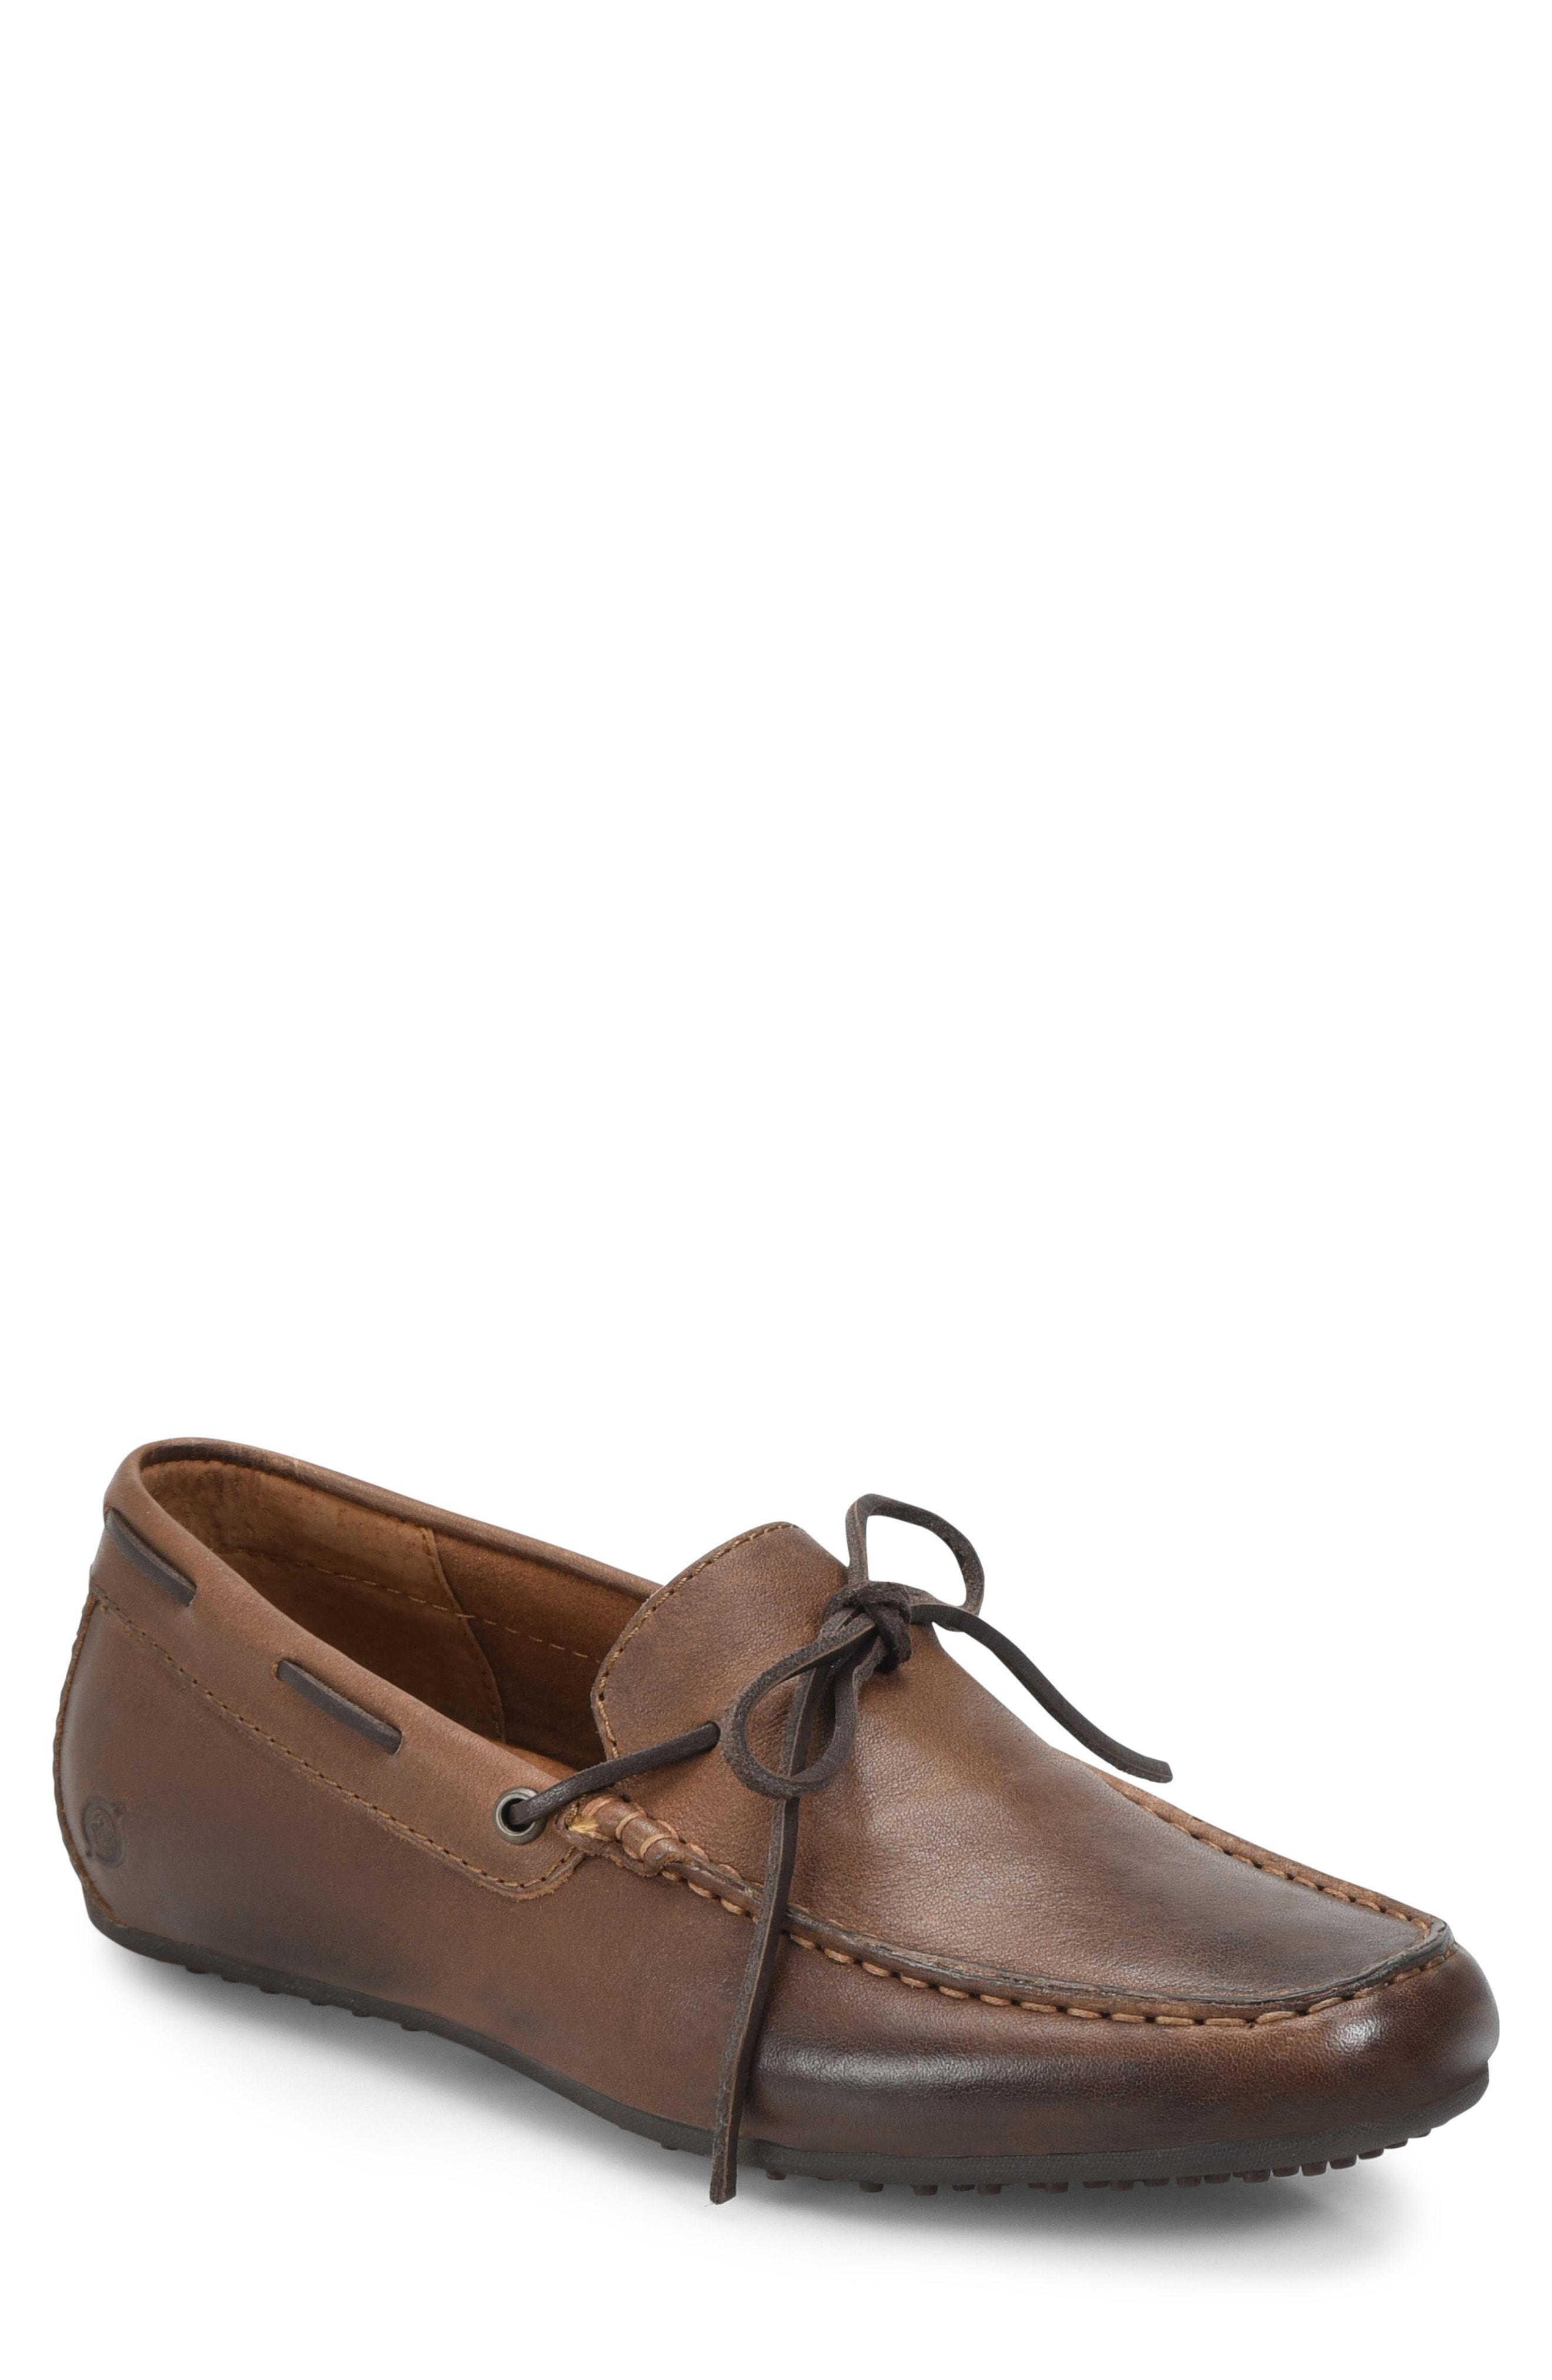 e0929bb4009 Lyst - Born B rn Virgo Driving Shoe in Brown for Men - Save ...